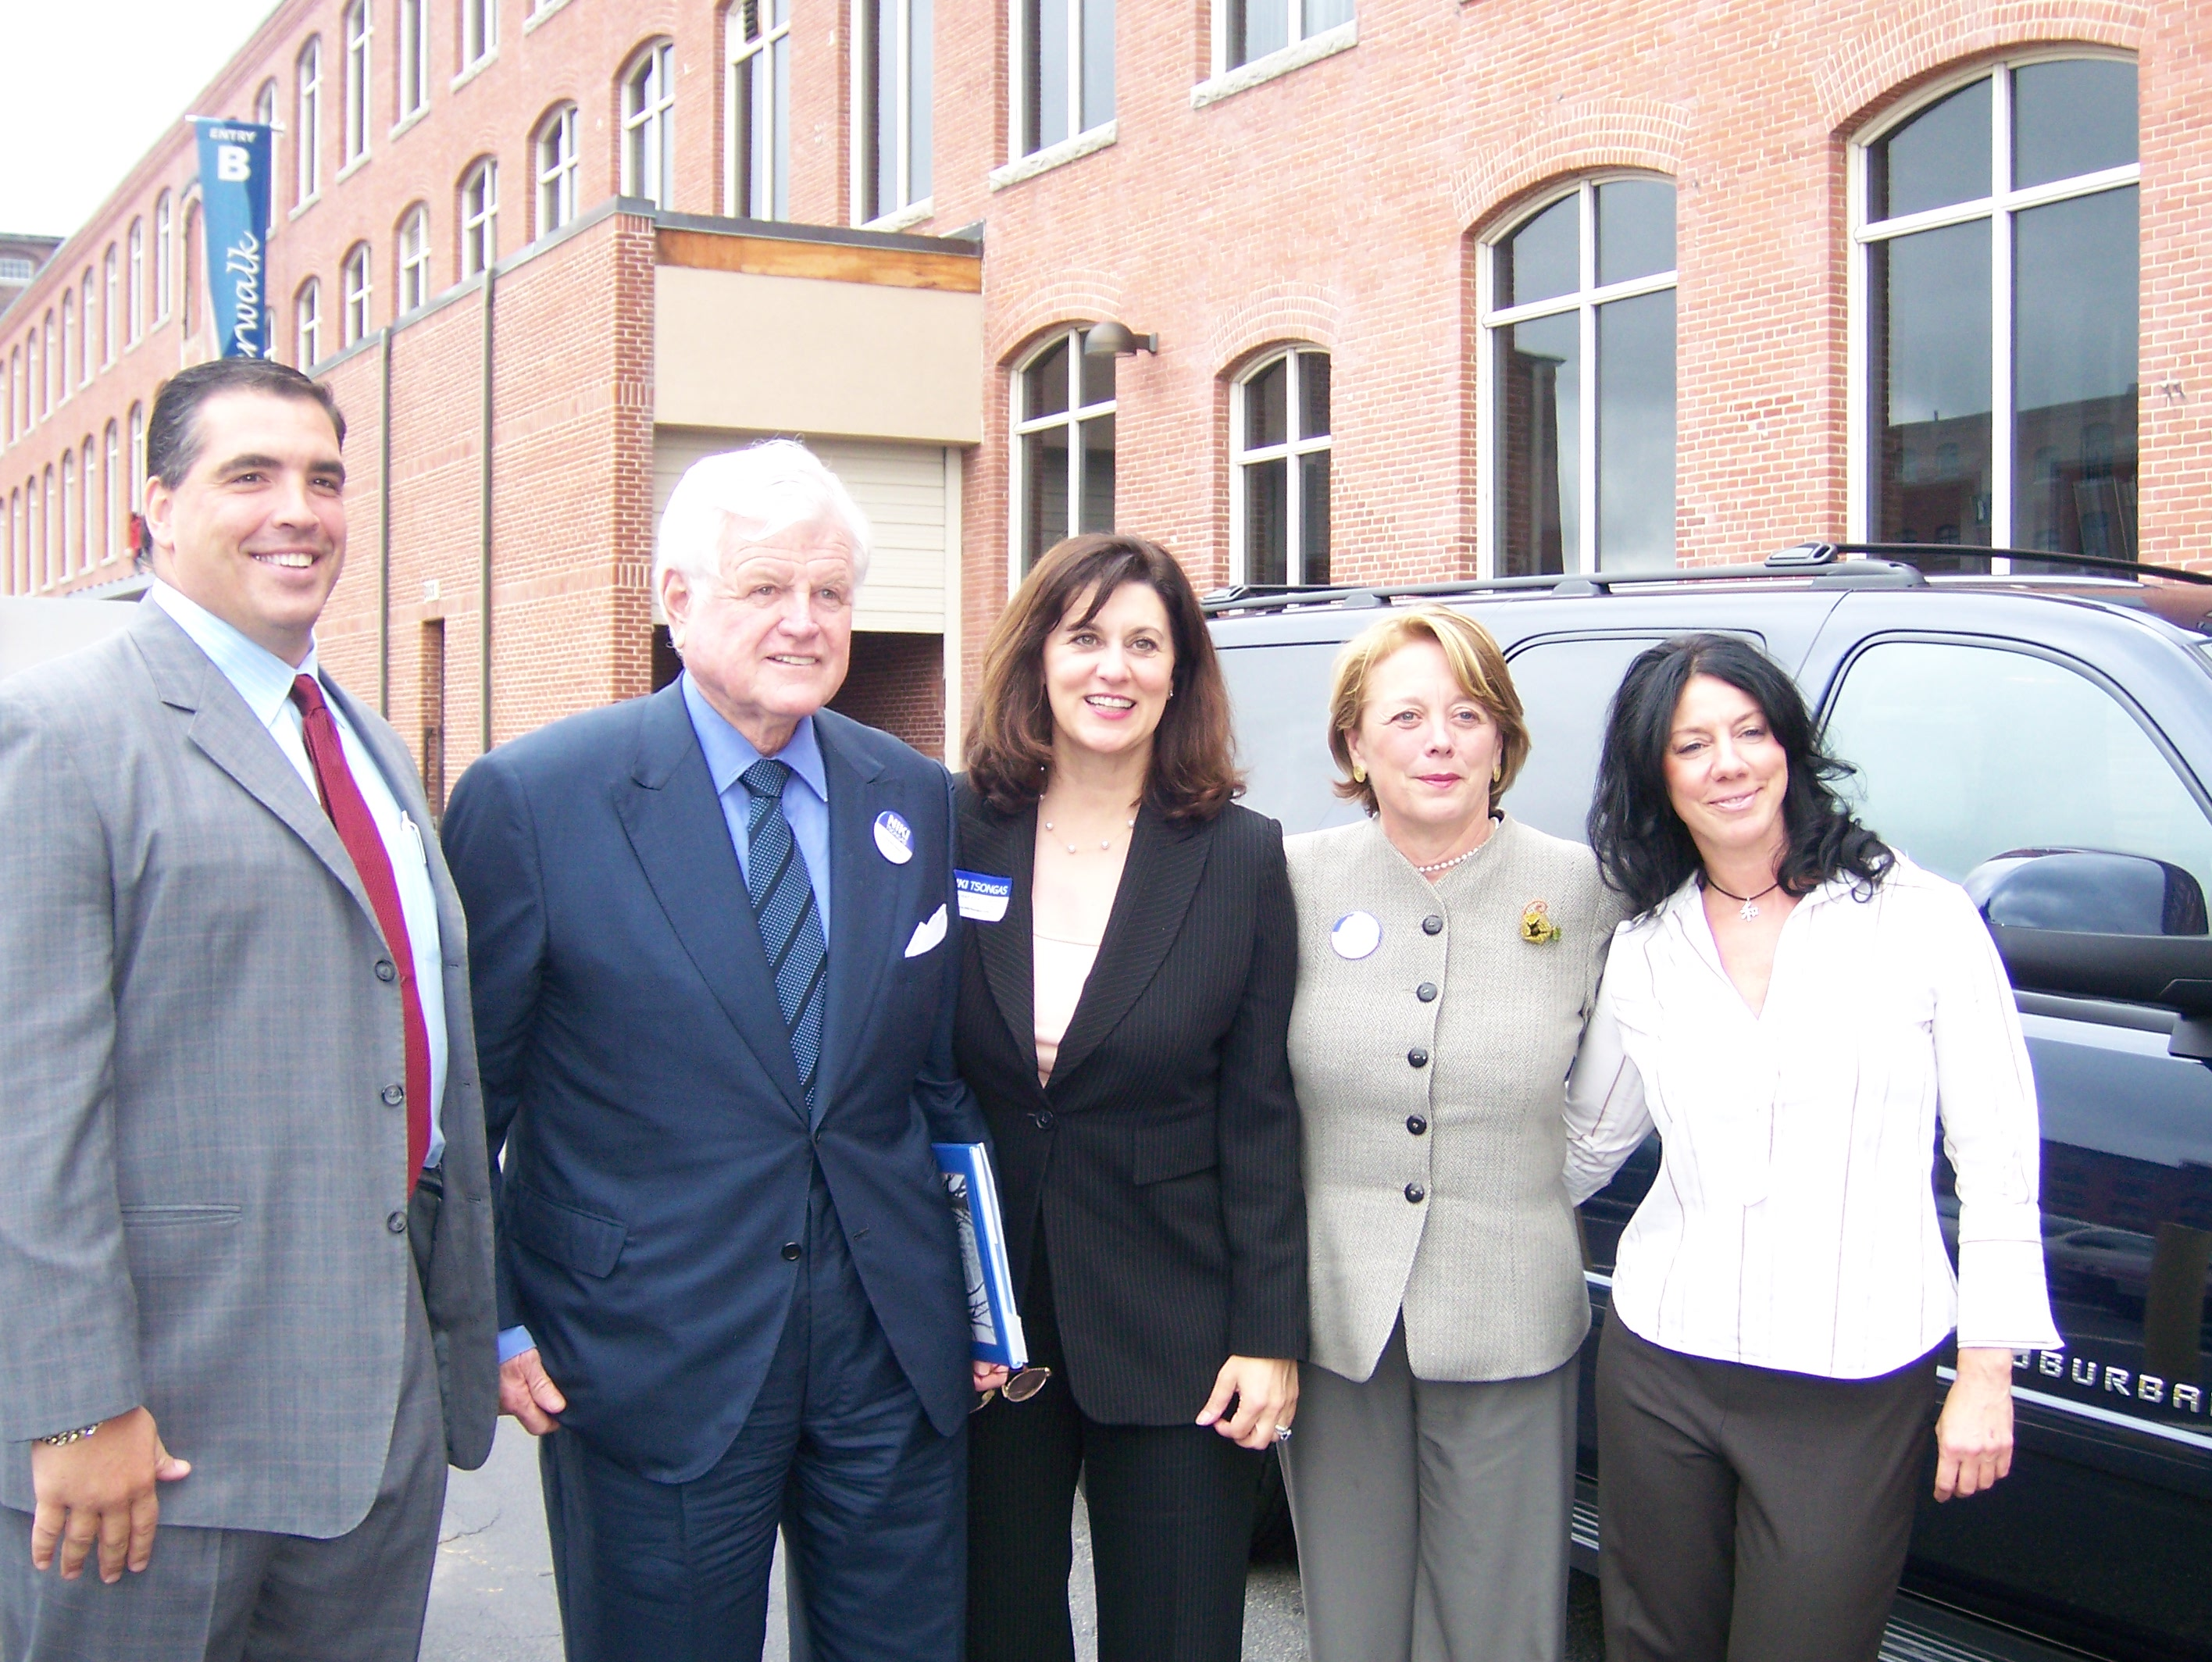 Sal Lupoli, Founder/CEO Lupoli Companies/Riverwalk Properties; Senator Ted Kennedy and his wife, Vicki Kennedy; and Congresswoman Niki Tsongas host a classroom visit and hold a press conference on the Child Health Bill.